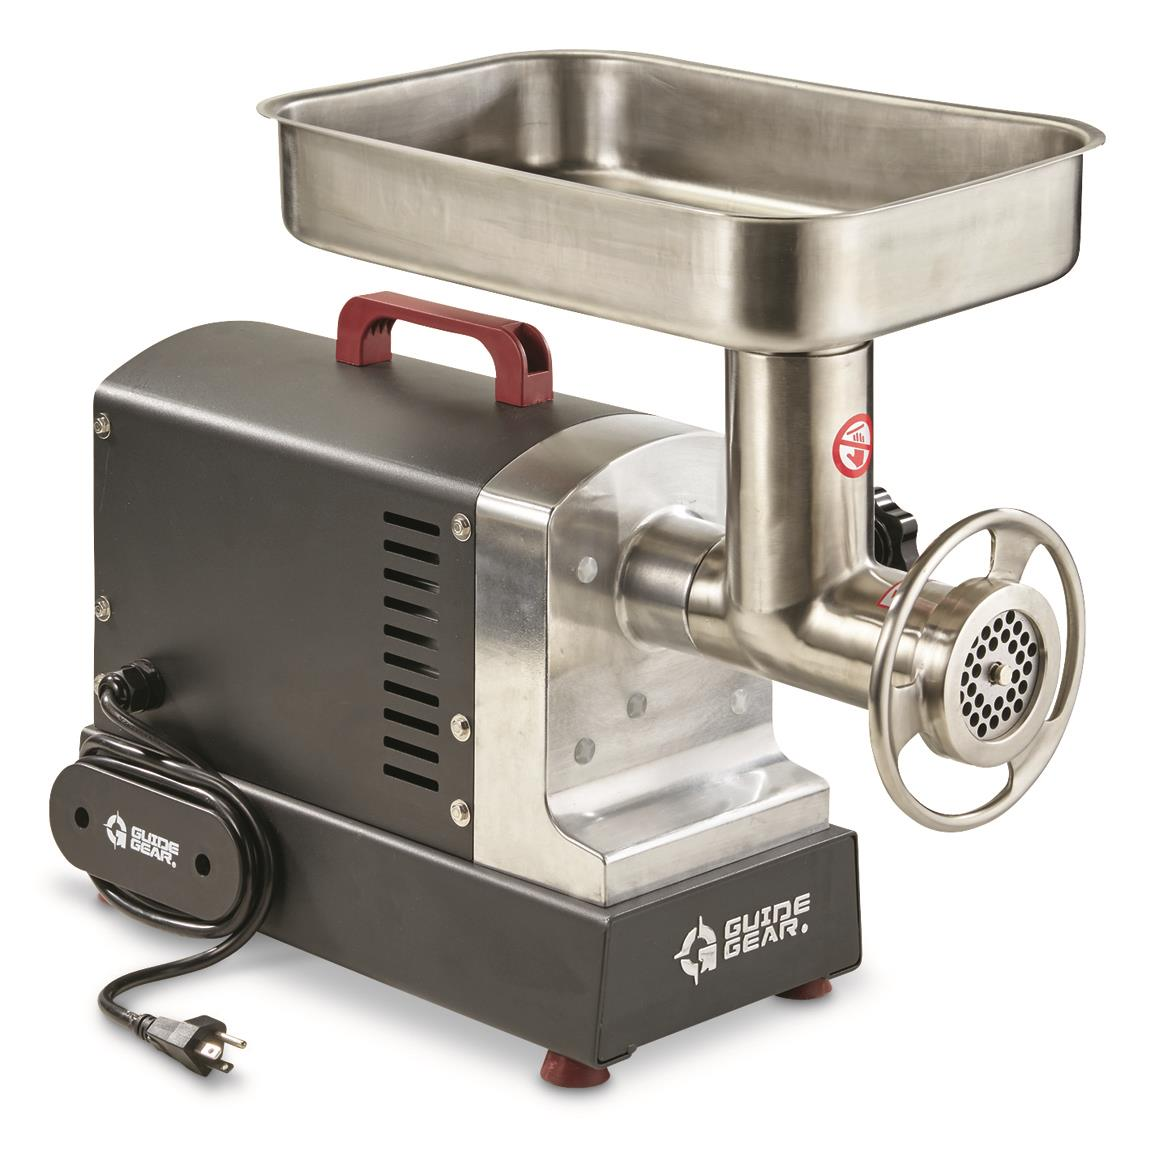 Guide Gear #12 Commercial Grade Electric Meat Grinder, 0.75 hp